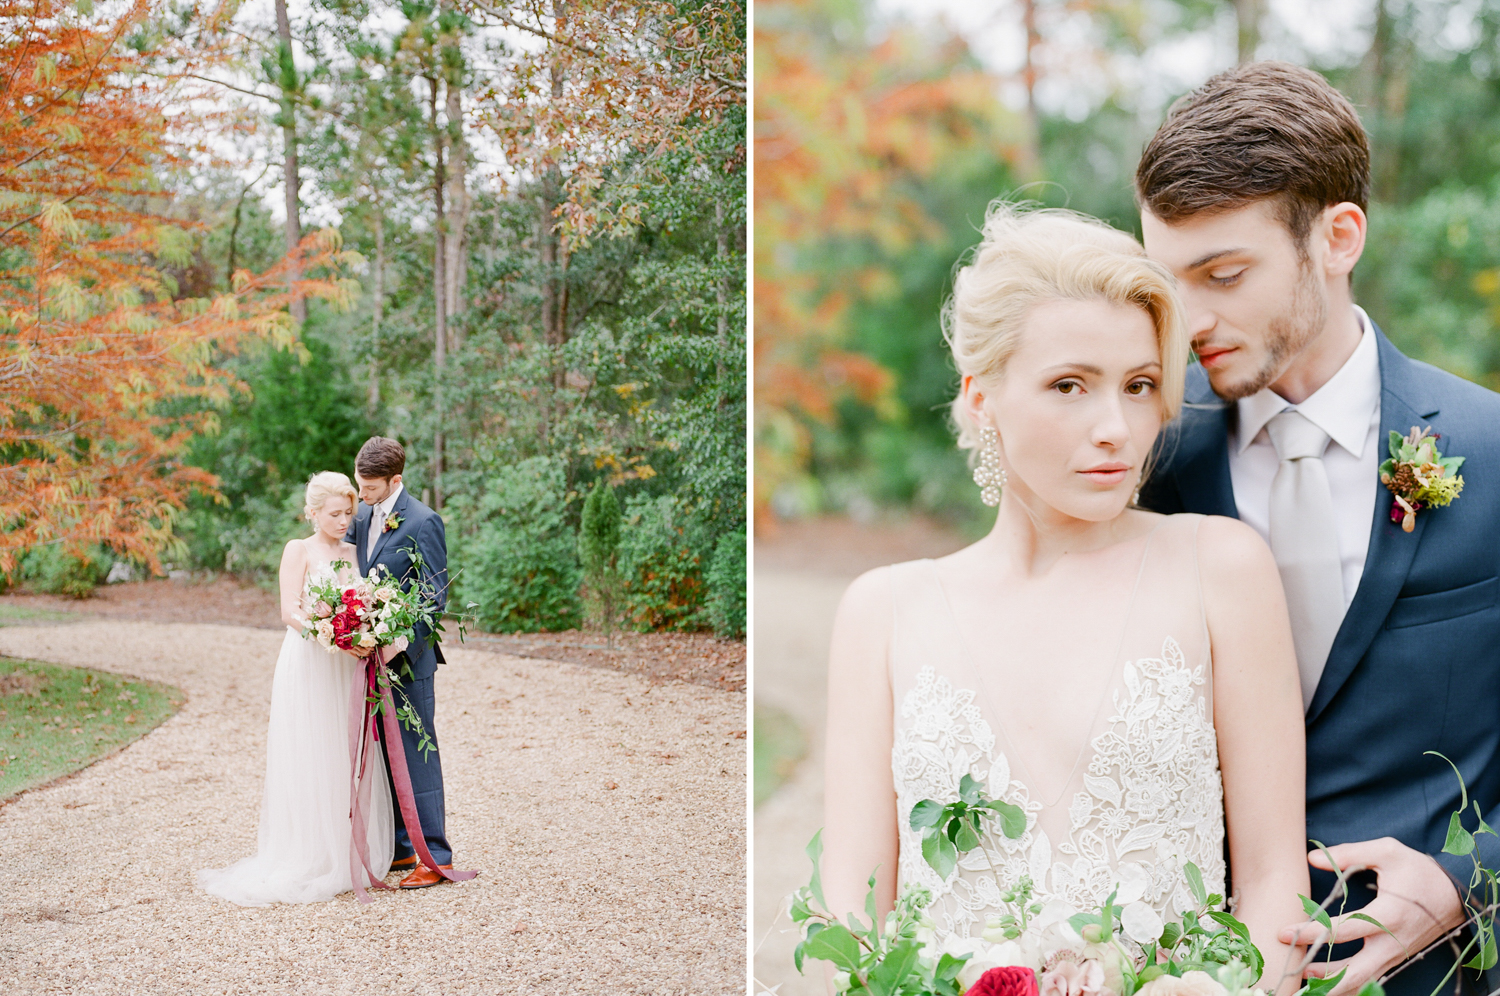 AKP_Film_wedding_photographer_los_angeles_river_oaks_south_carolina_romantic-3.jpg